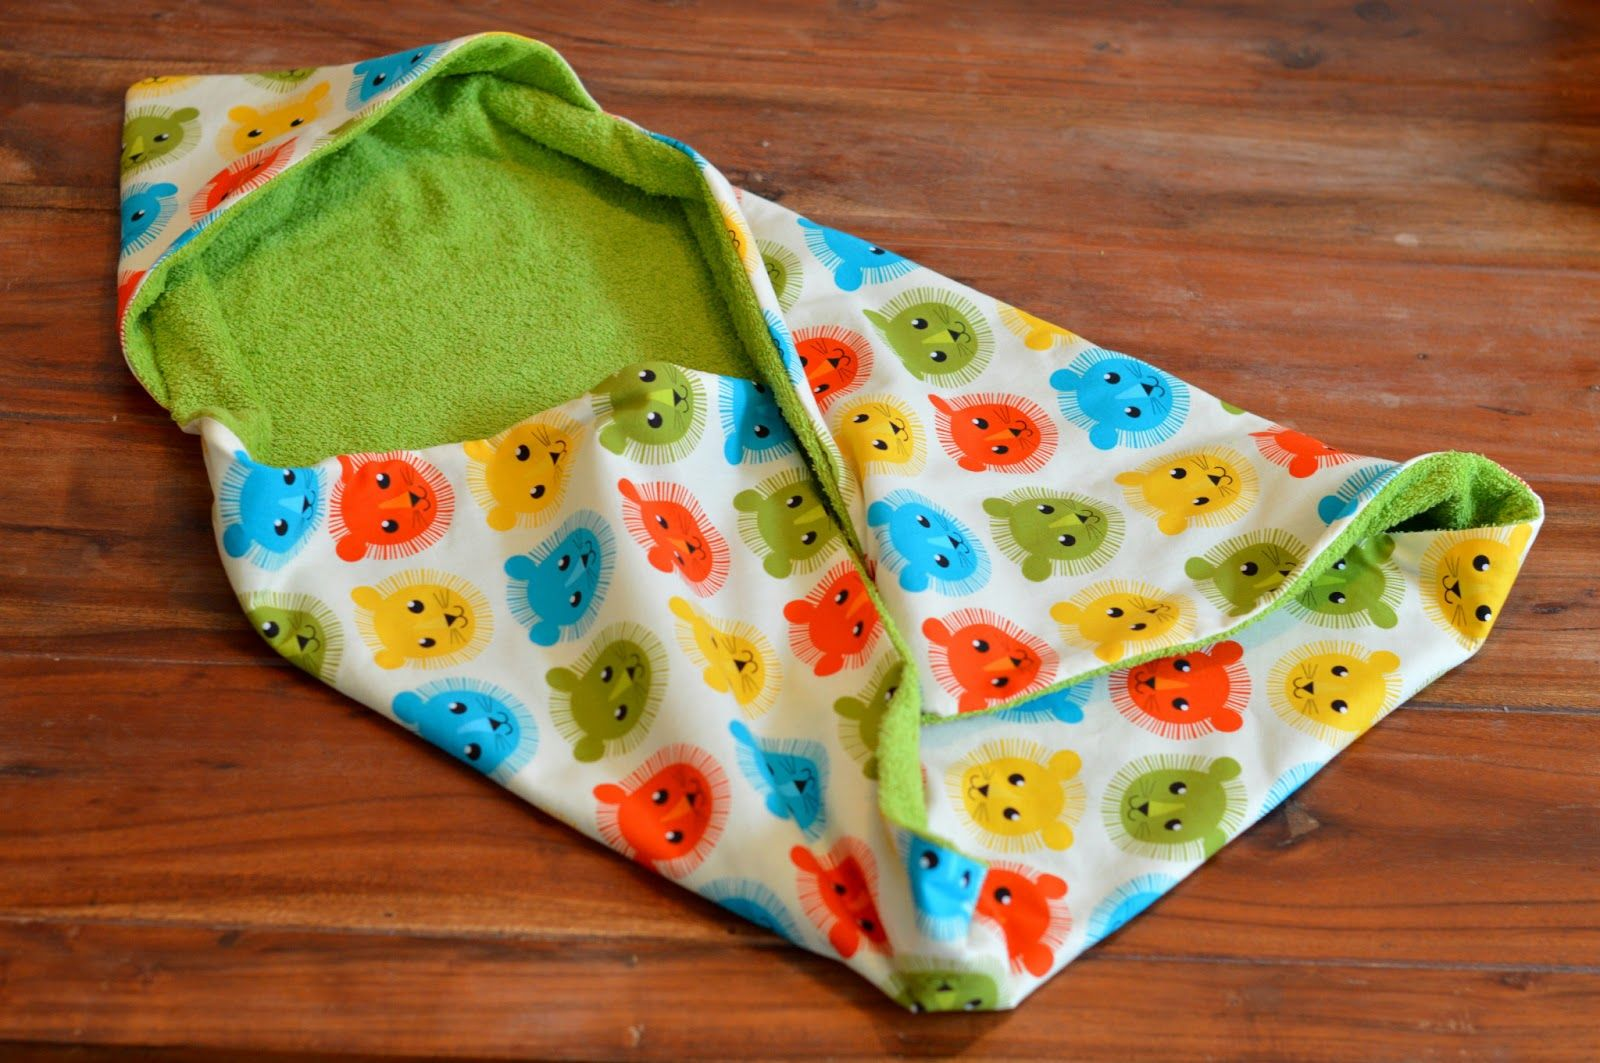 Baby Handtuch Tutorial Babyhandtuch Kapuze Hooded Baby Towel Kids